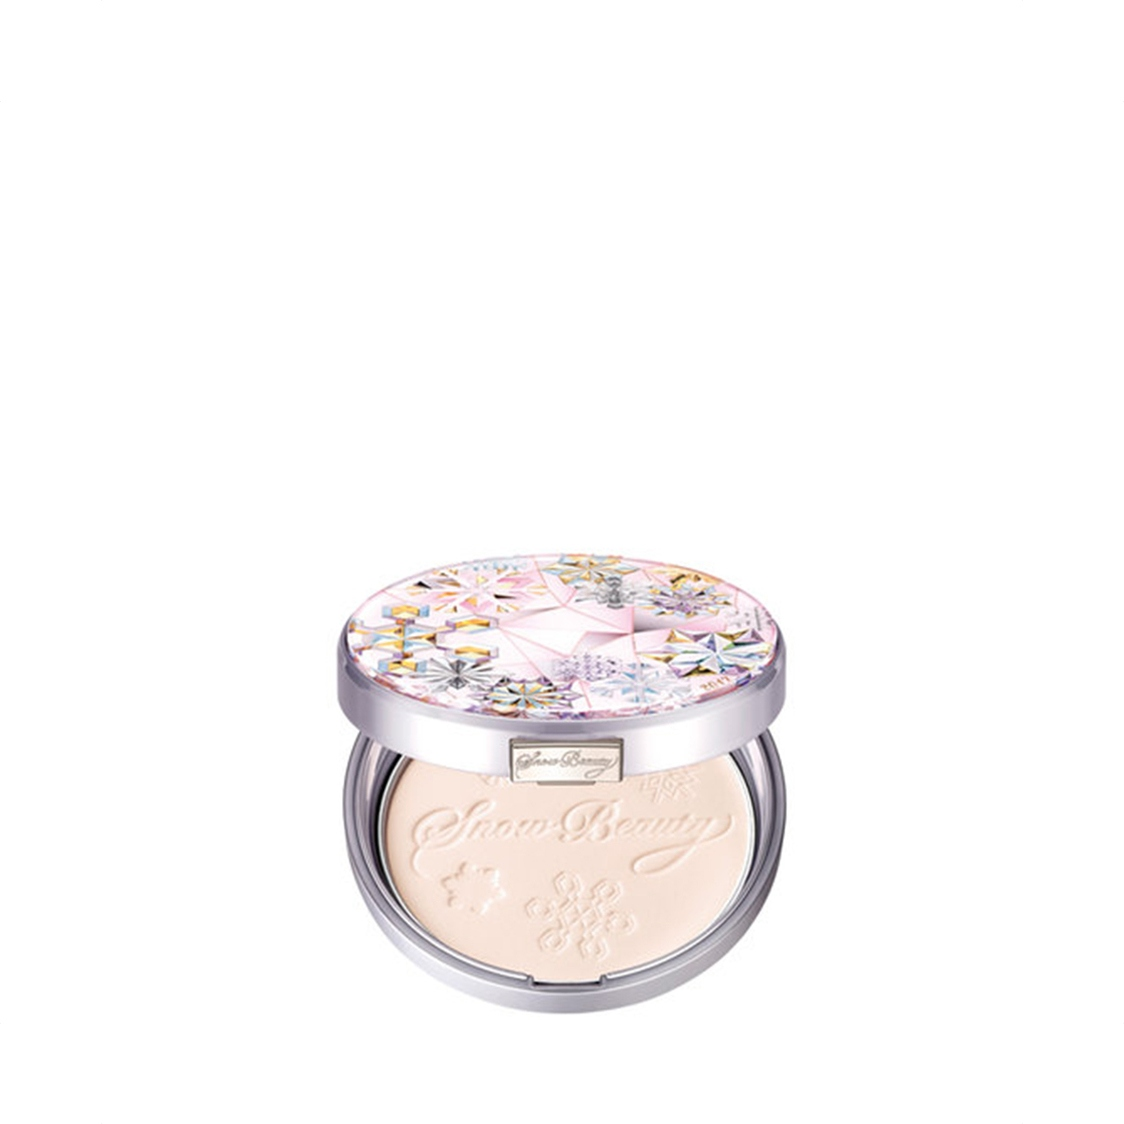 Maquillage Snow Beauty 2017